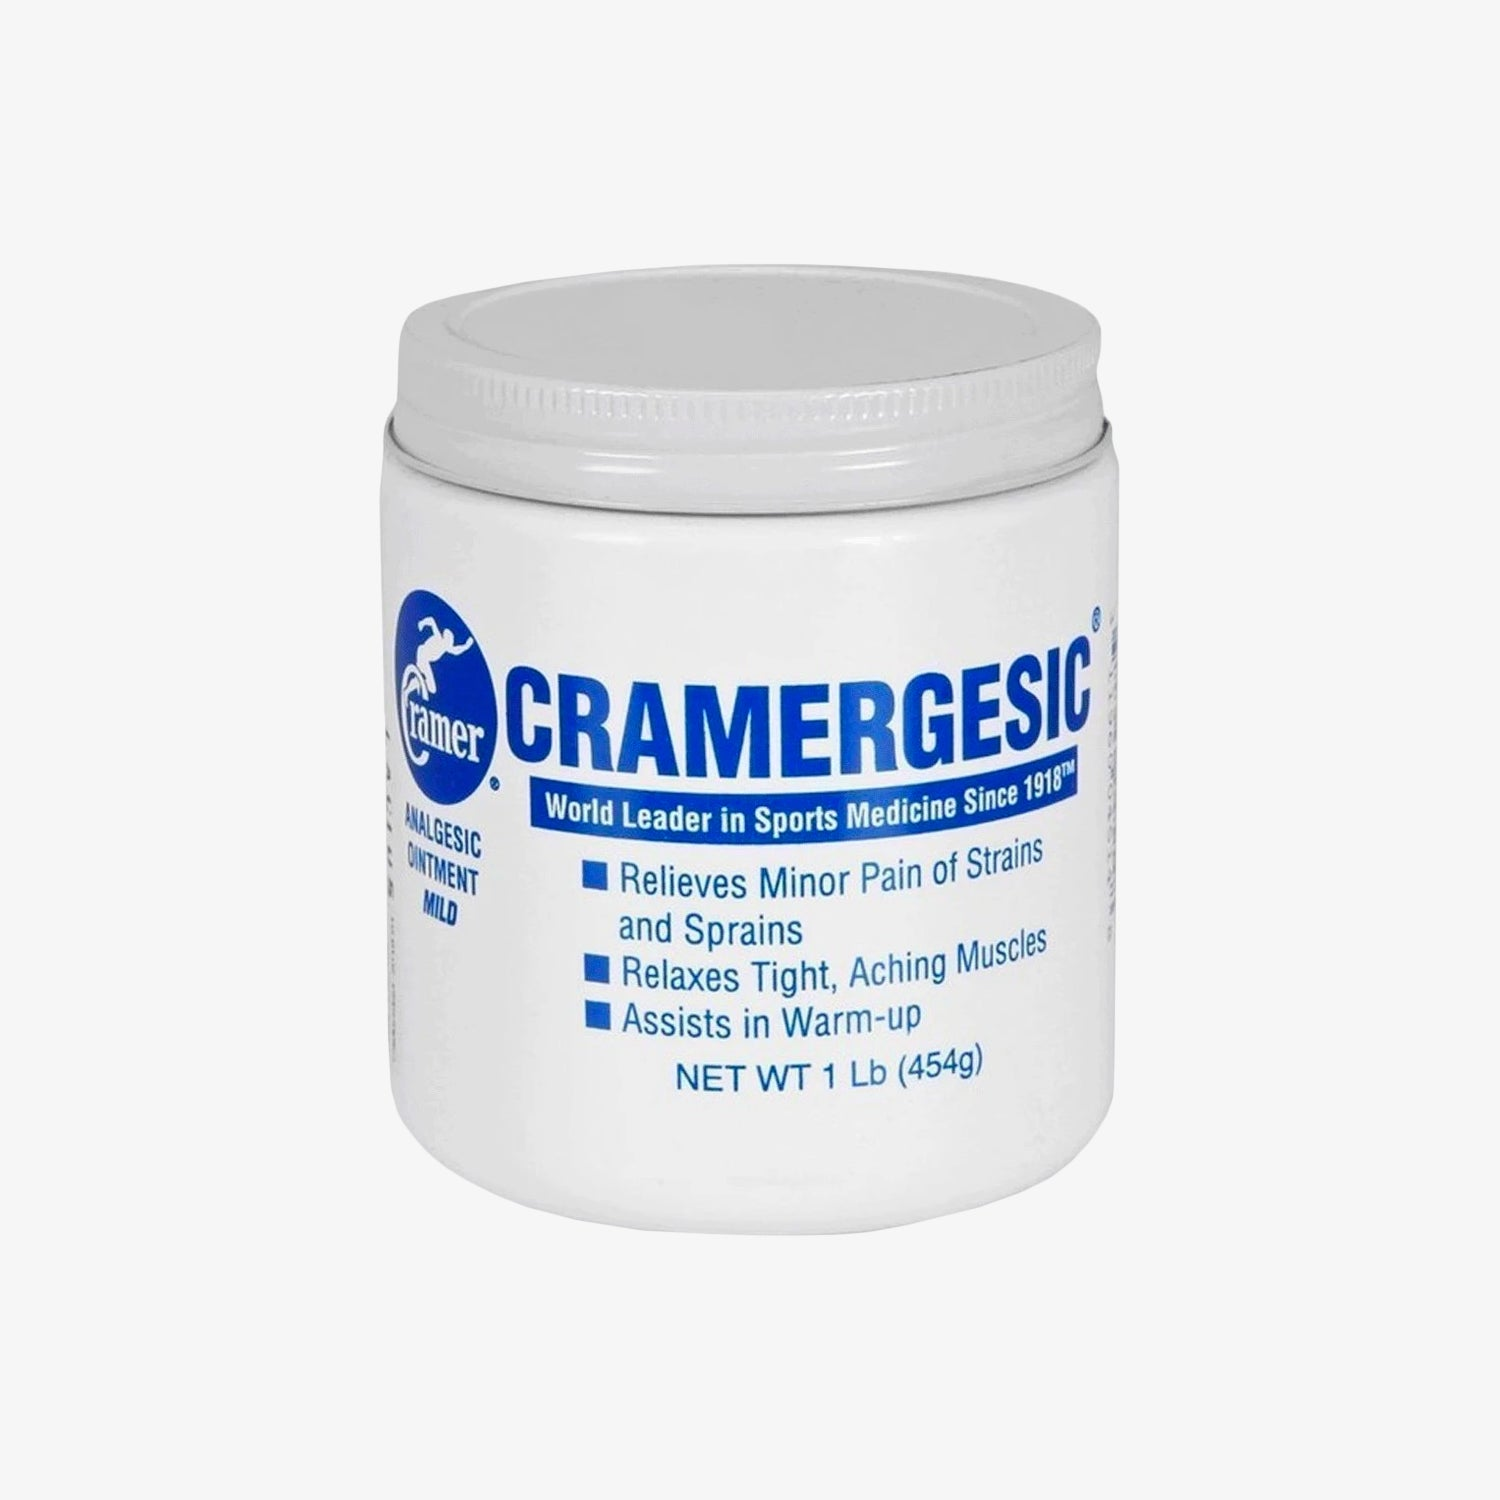 Cramergesic Analgesic Ointment - 1 lb Jar